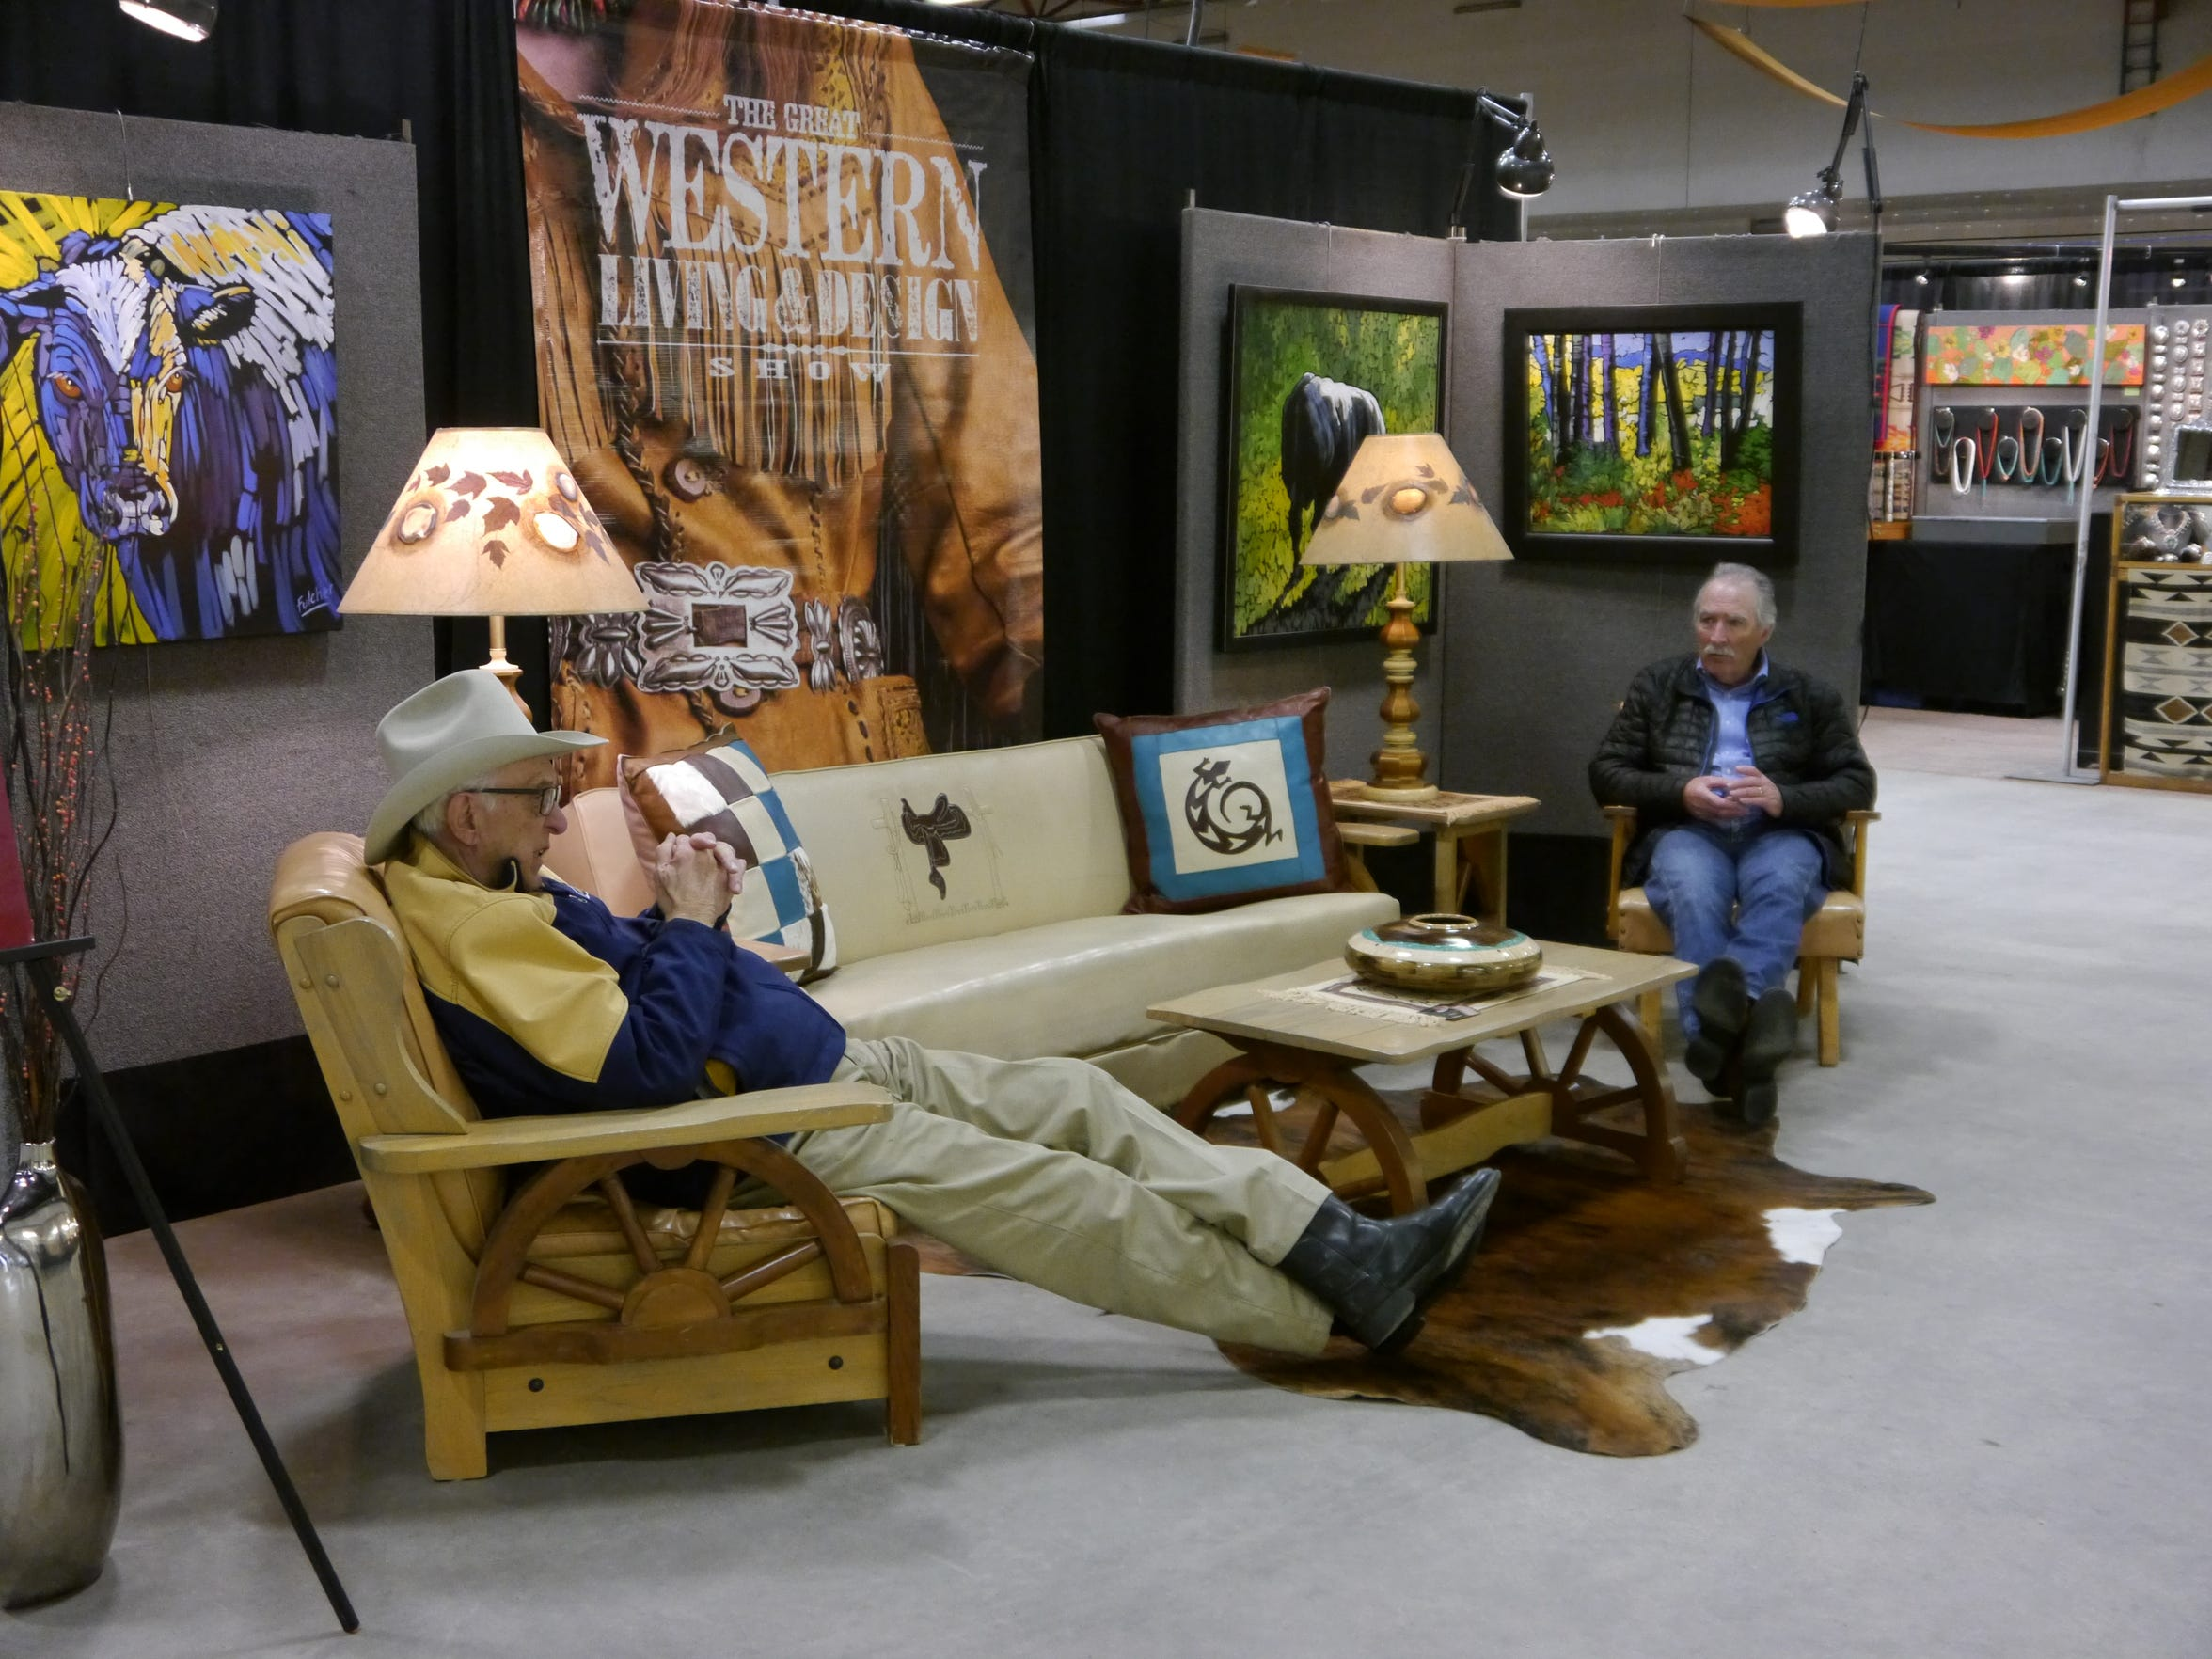 The couches are a popular resting spot during Western Art Week at the Western Living and Design Show in the Four Seasons Arena.